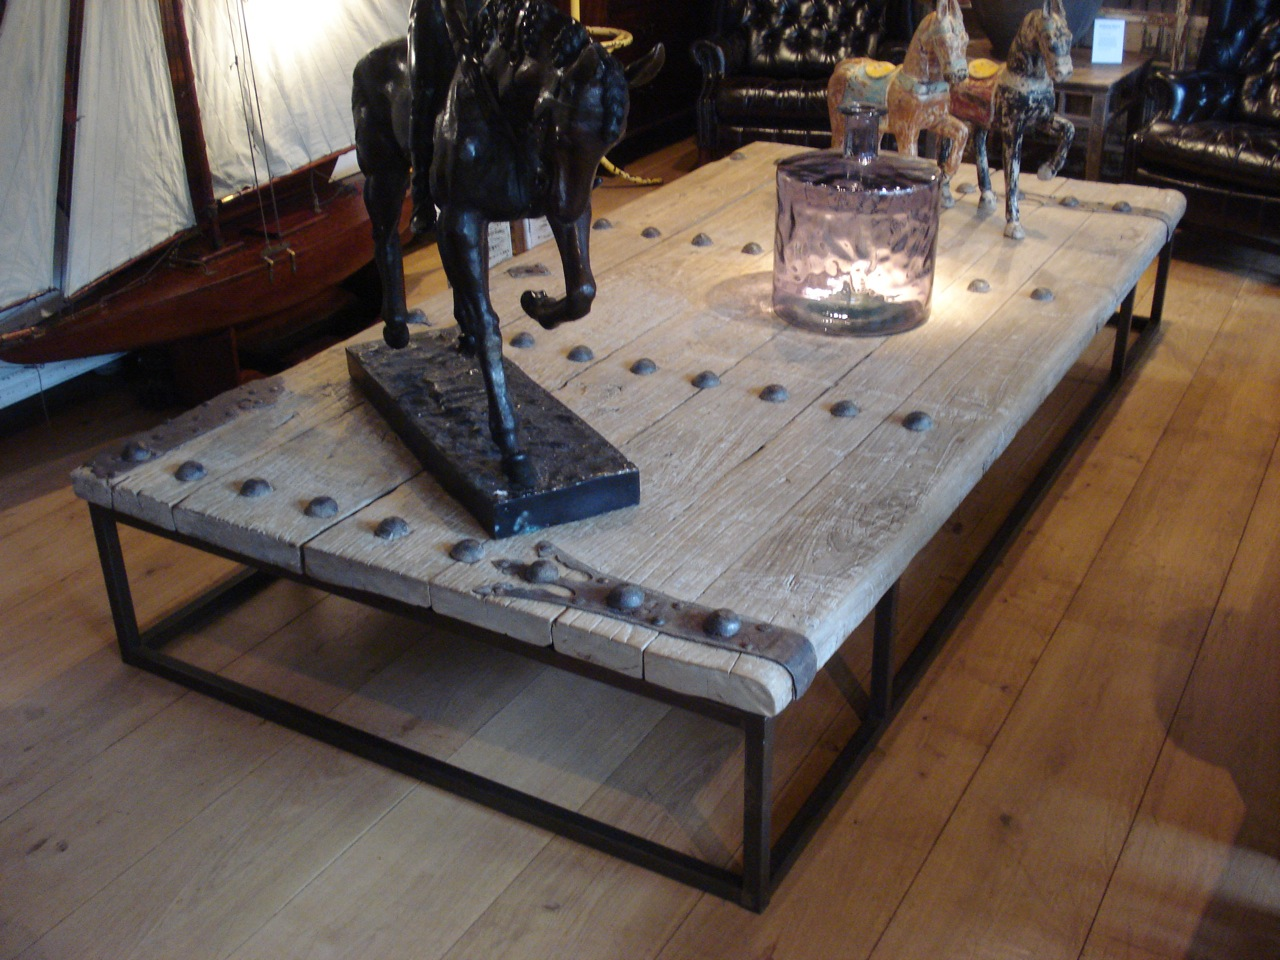 Decorate Old Fashioned Large Coffee Table with Glass Vase and Horse Sculptures on Laminate Oak Flooring